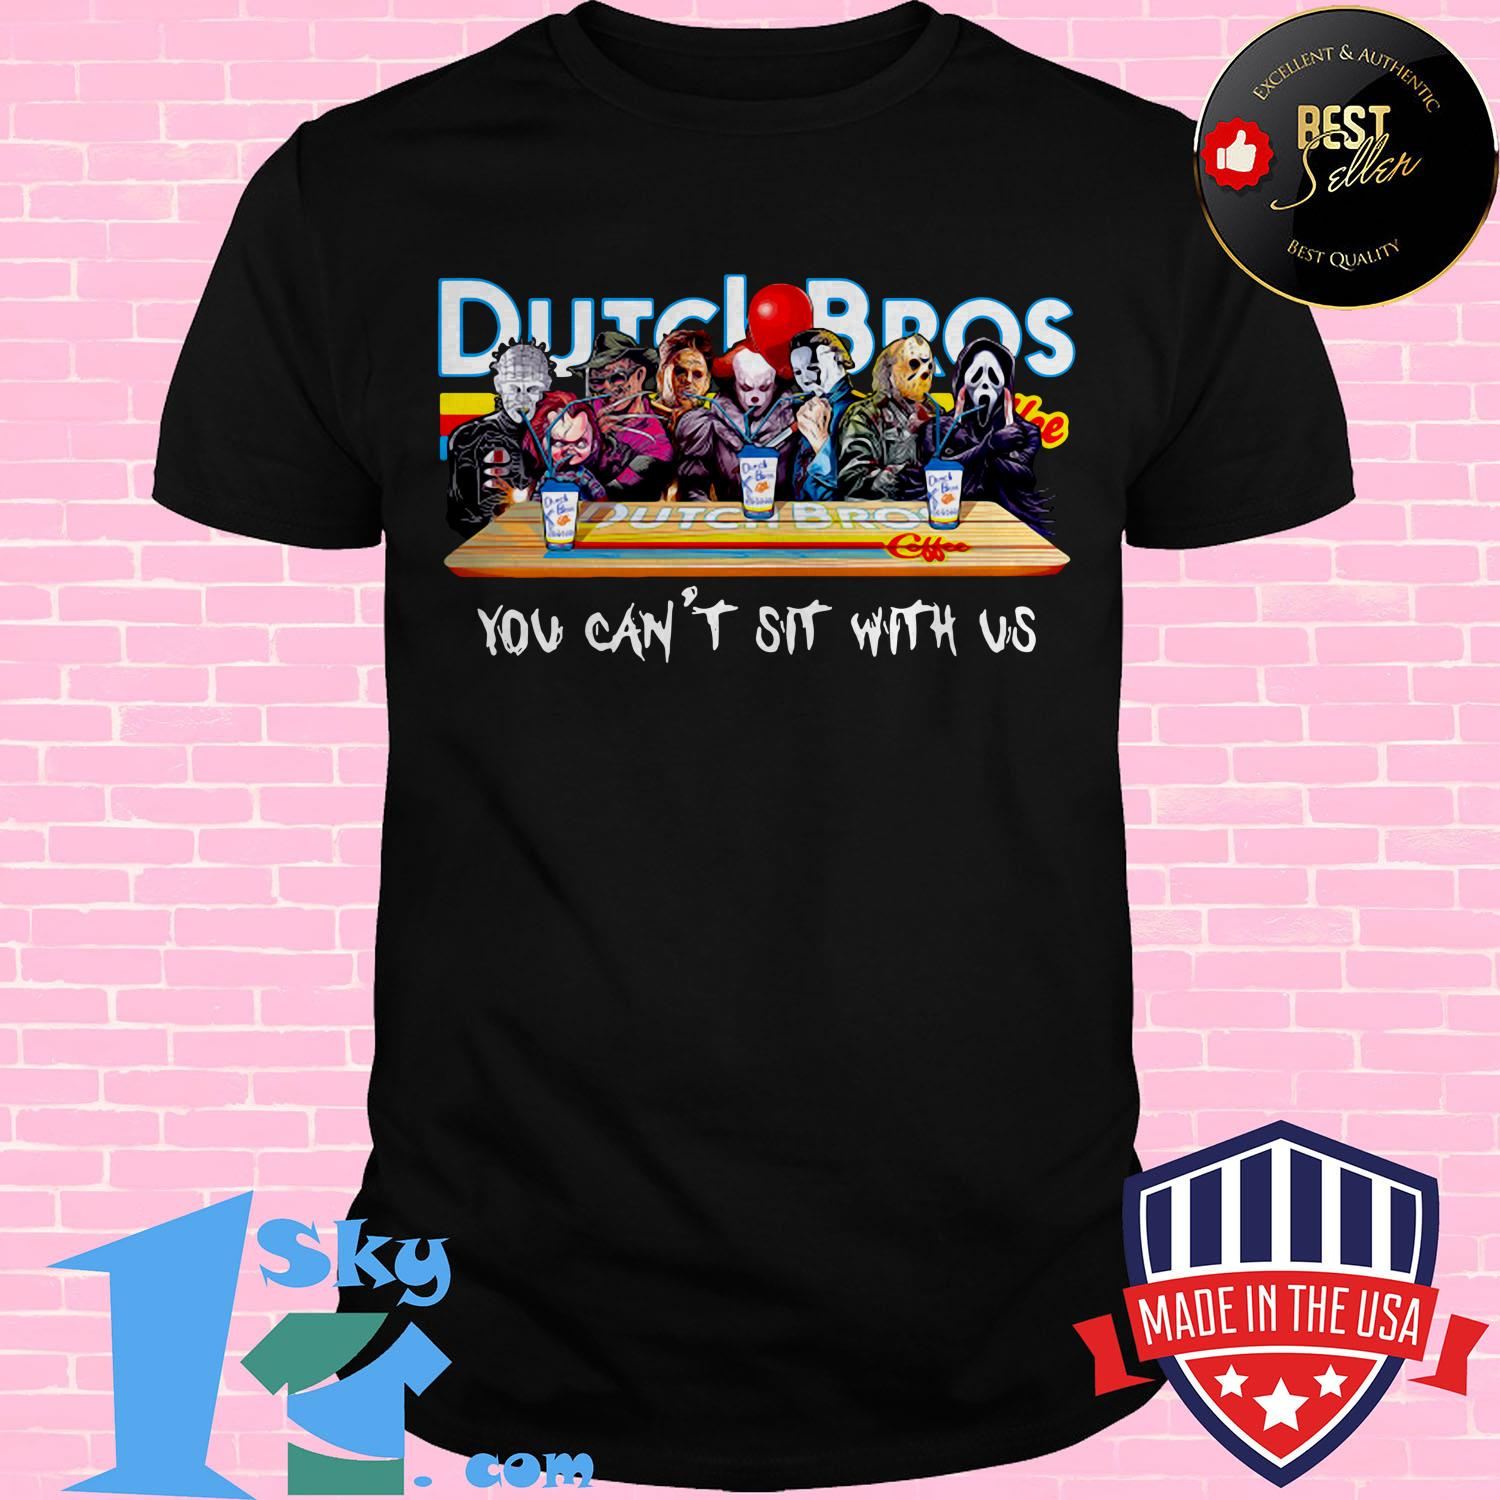 dutch bros coffee horror character movie you cant sit with us ladies tee - Dutch Bros Coffee Horror Character movie You Can't Sit with Us shirt